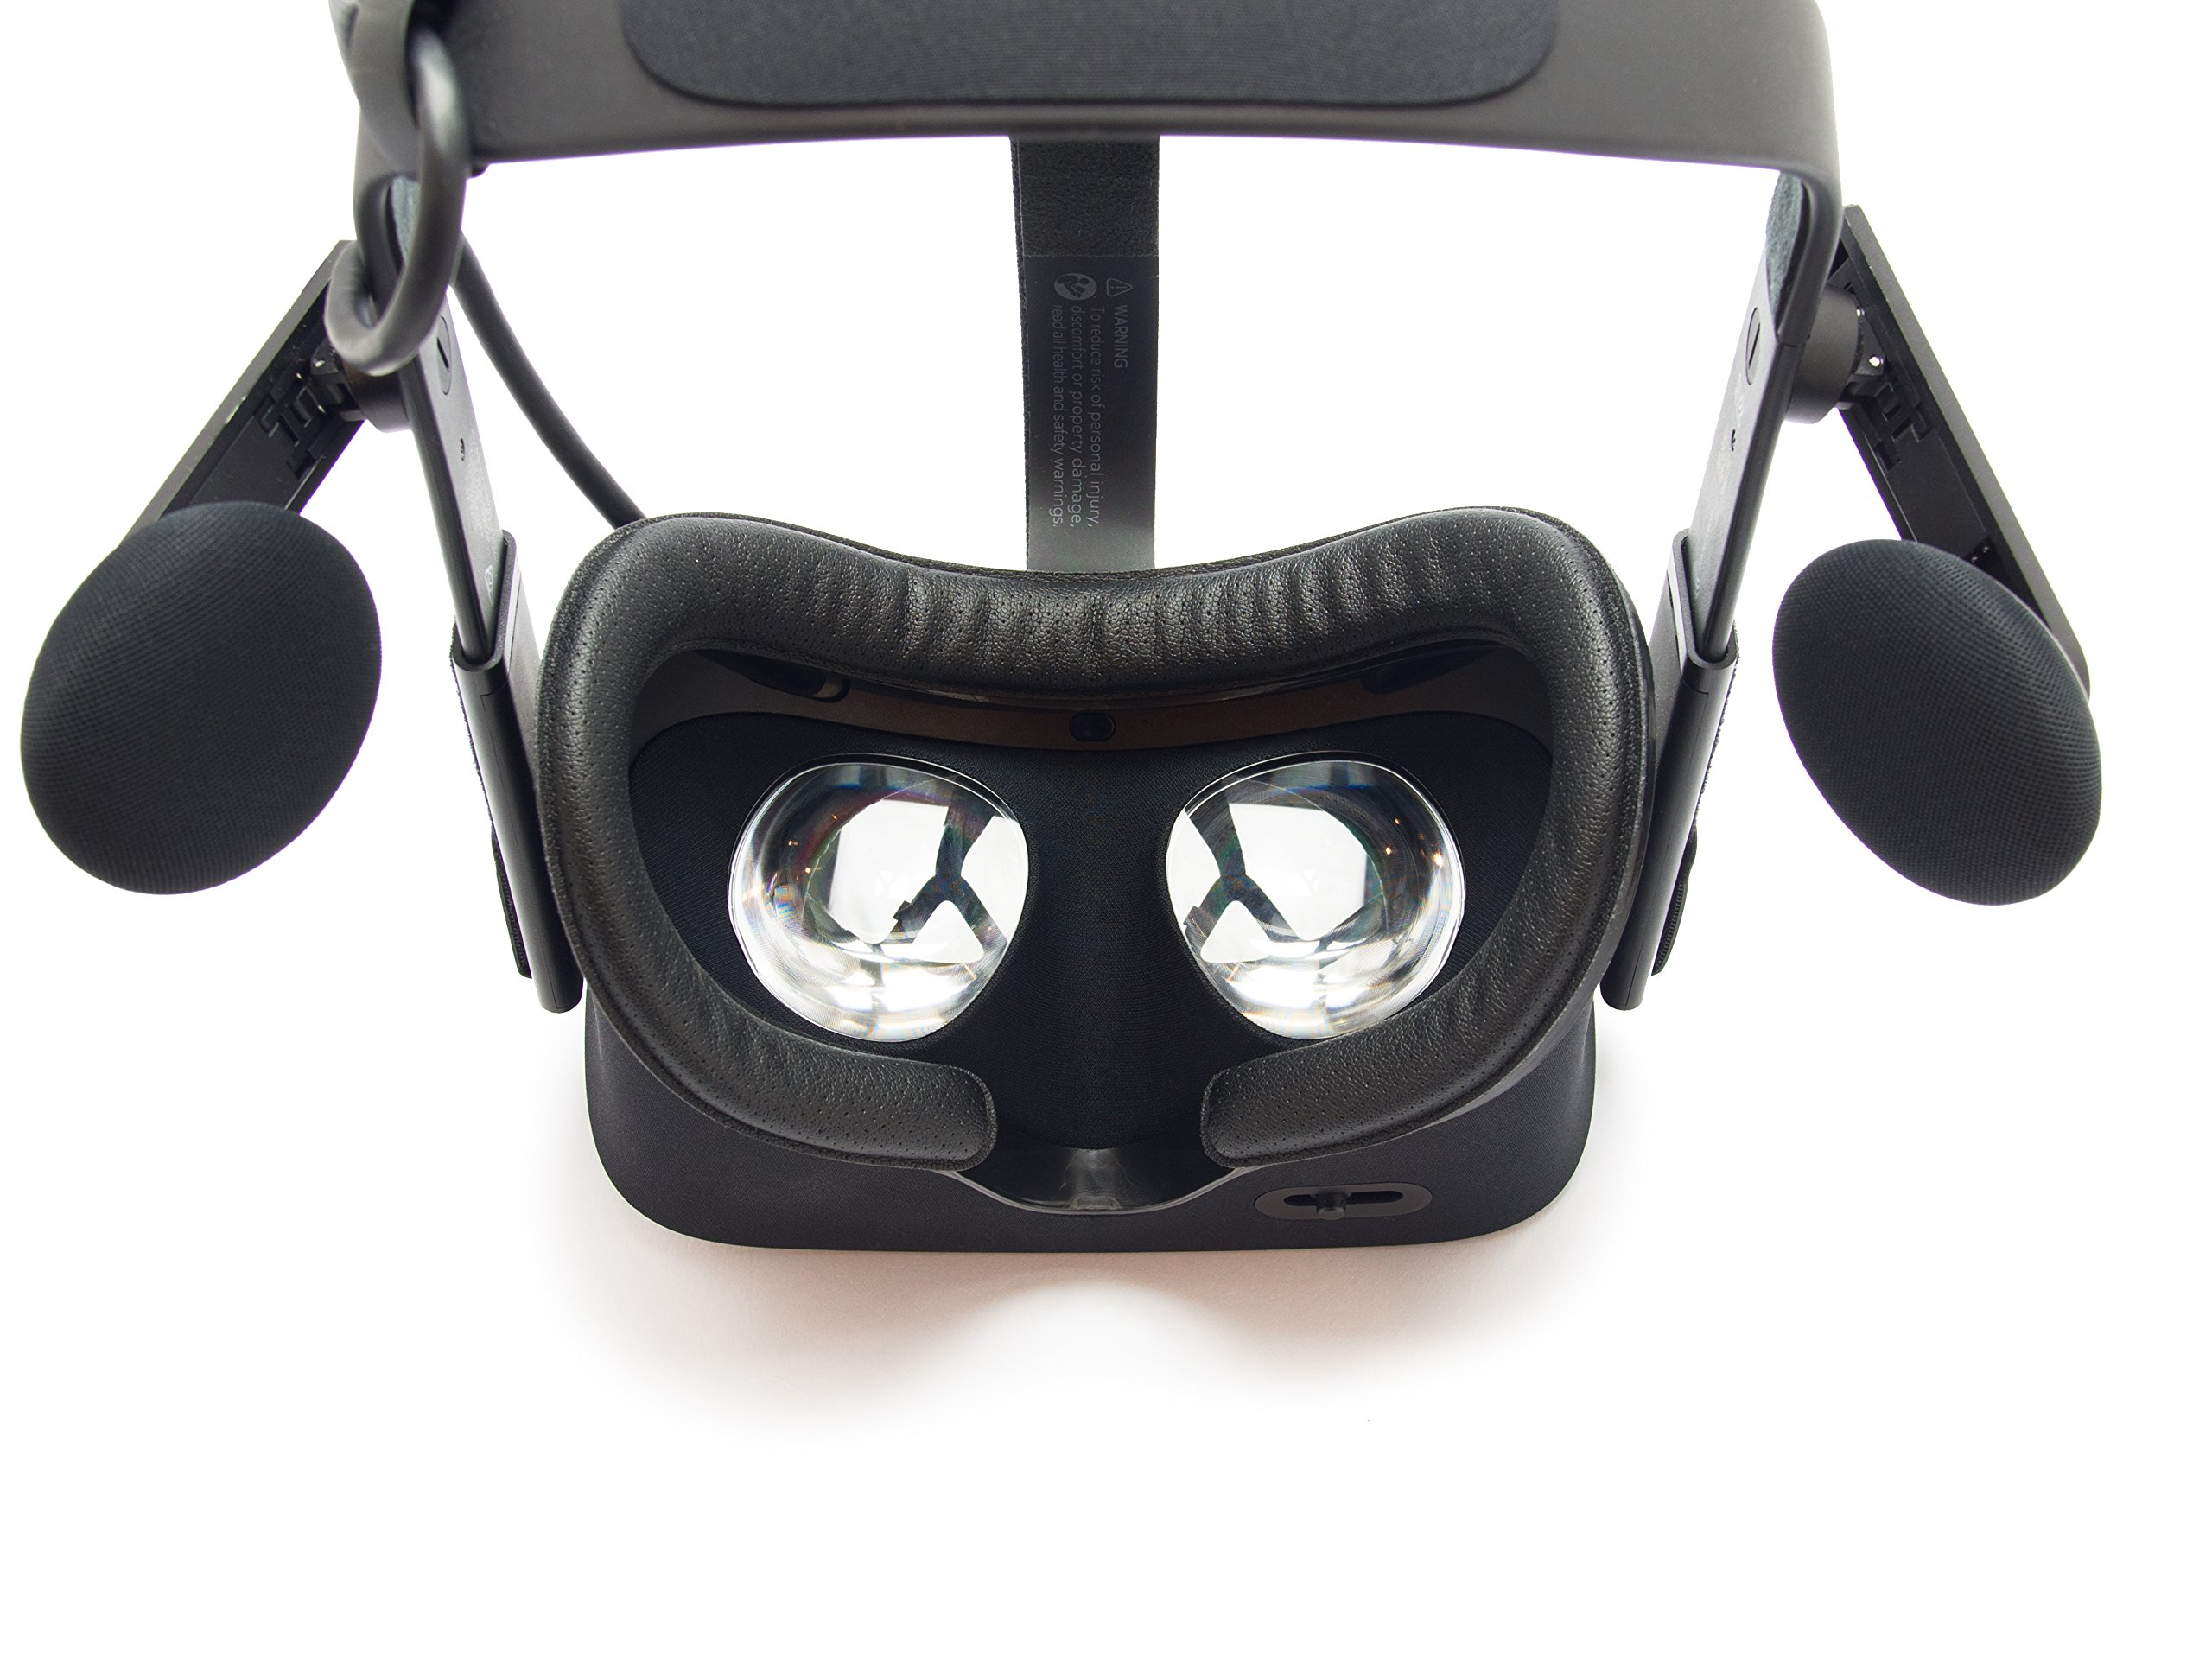 Oculus Rift Facial Interface & Foam Replacement Hygiene Set by VR Cover